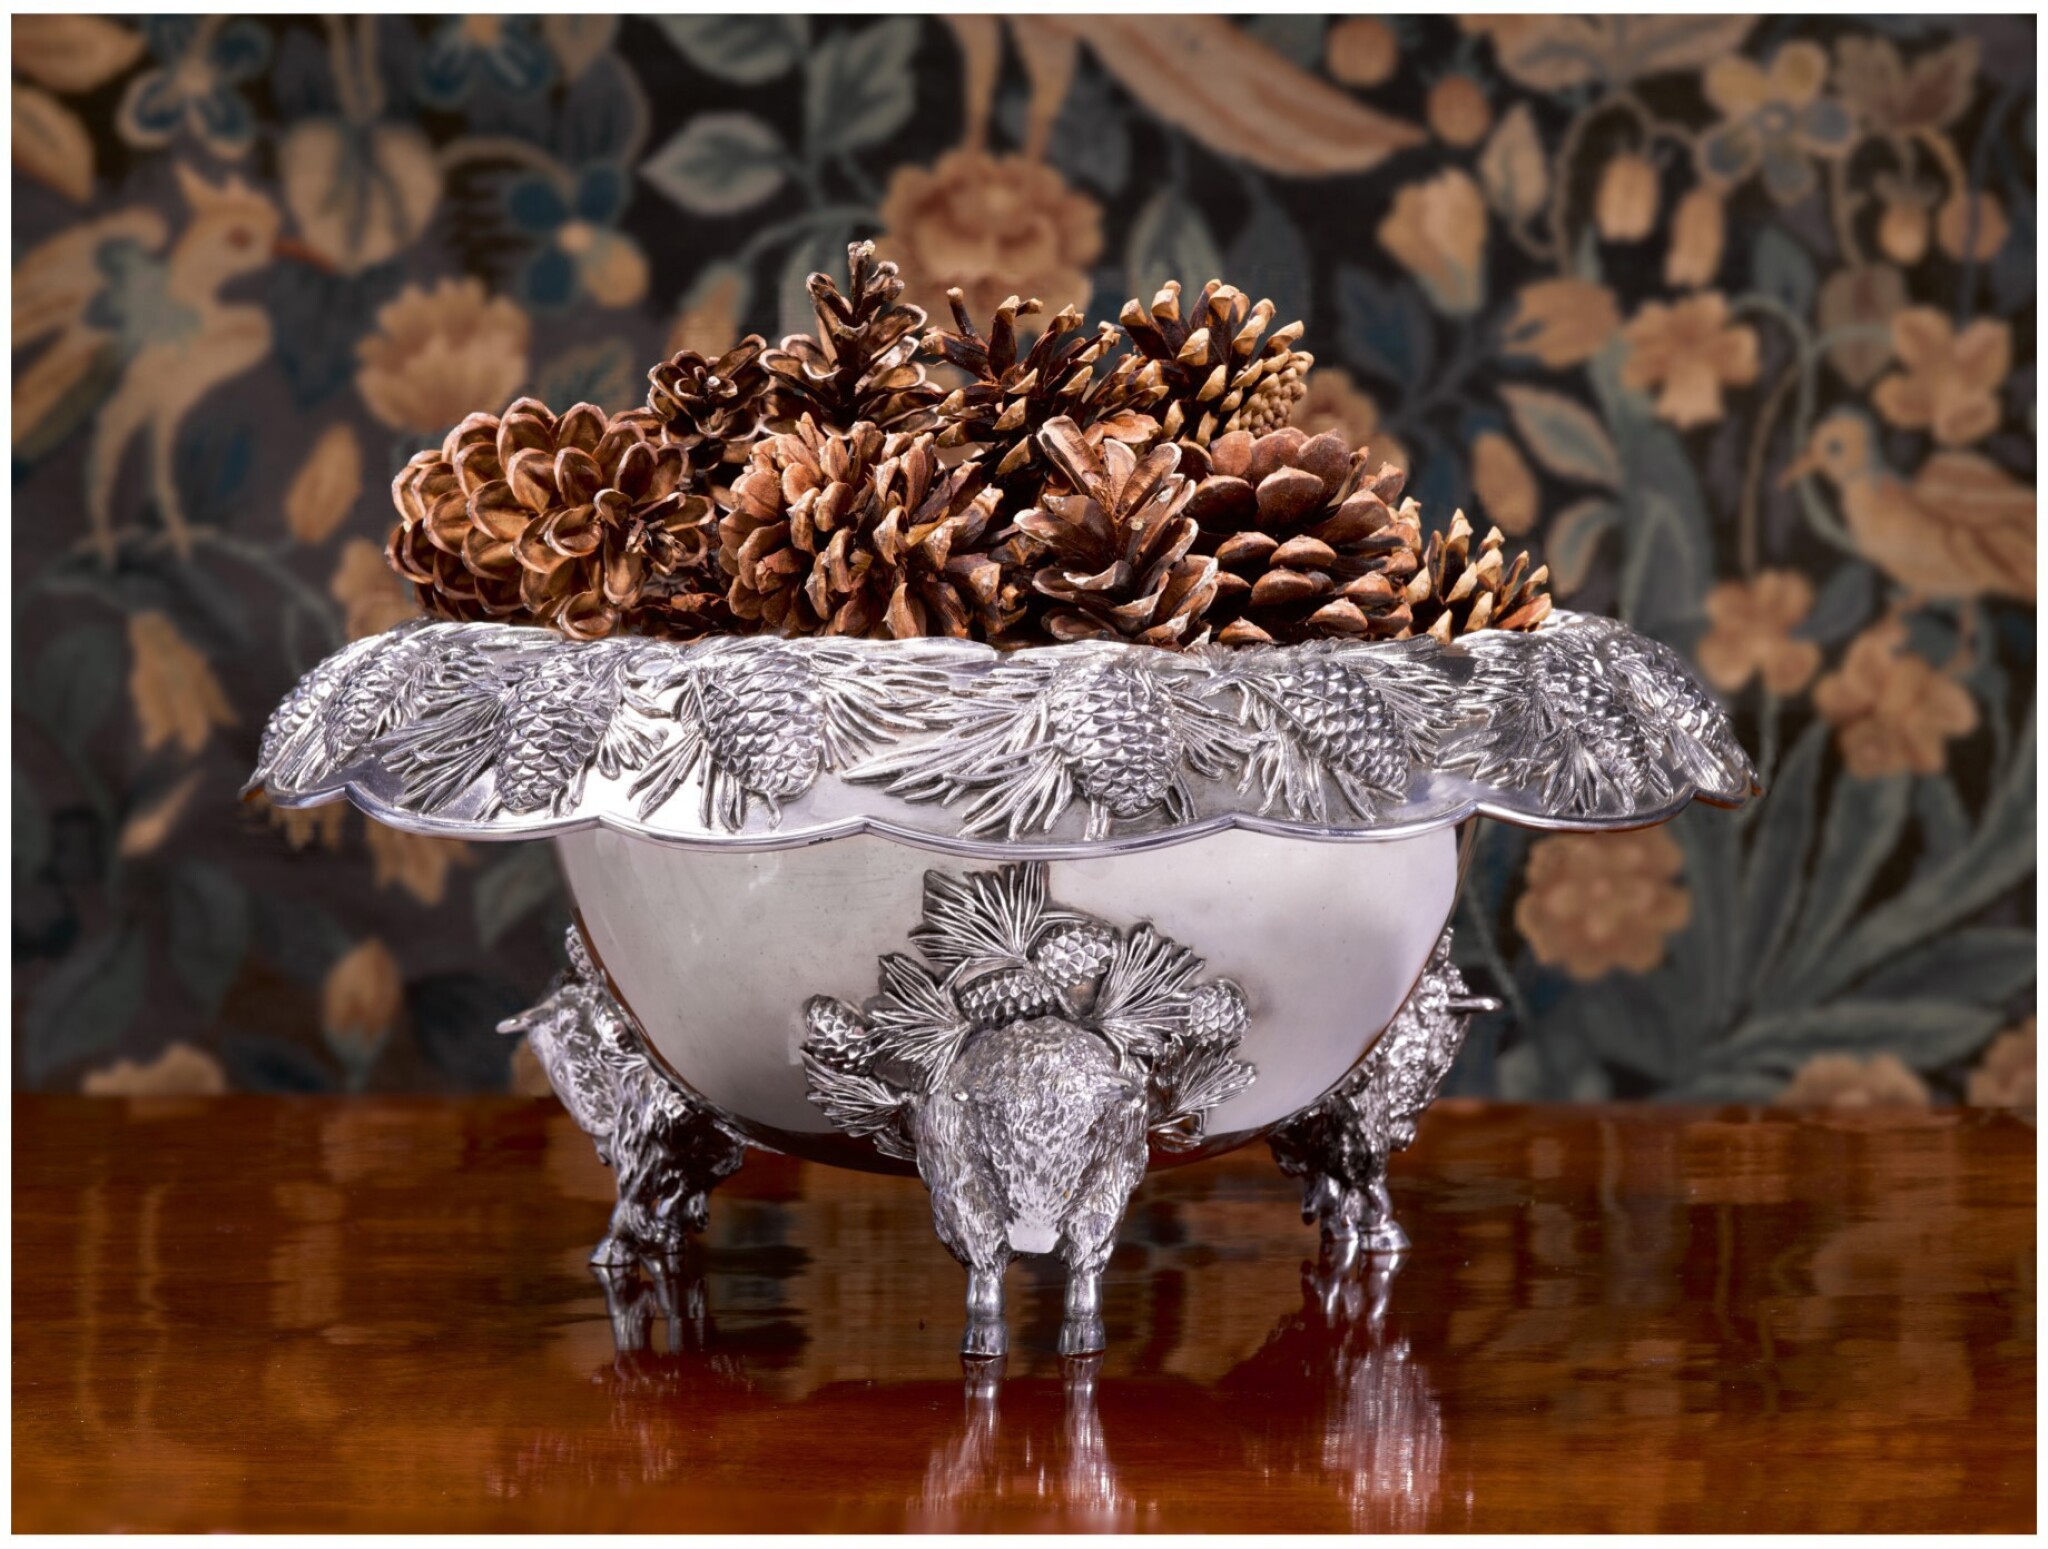 AN AMERICAN SILVER PUNCH BOWL, GORHAM MFG. CO., PROVIDENCE, RI, EARLY 20TH CENTURY